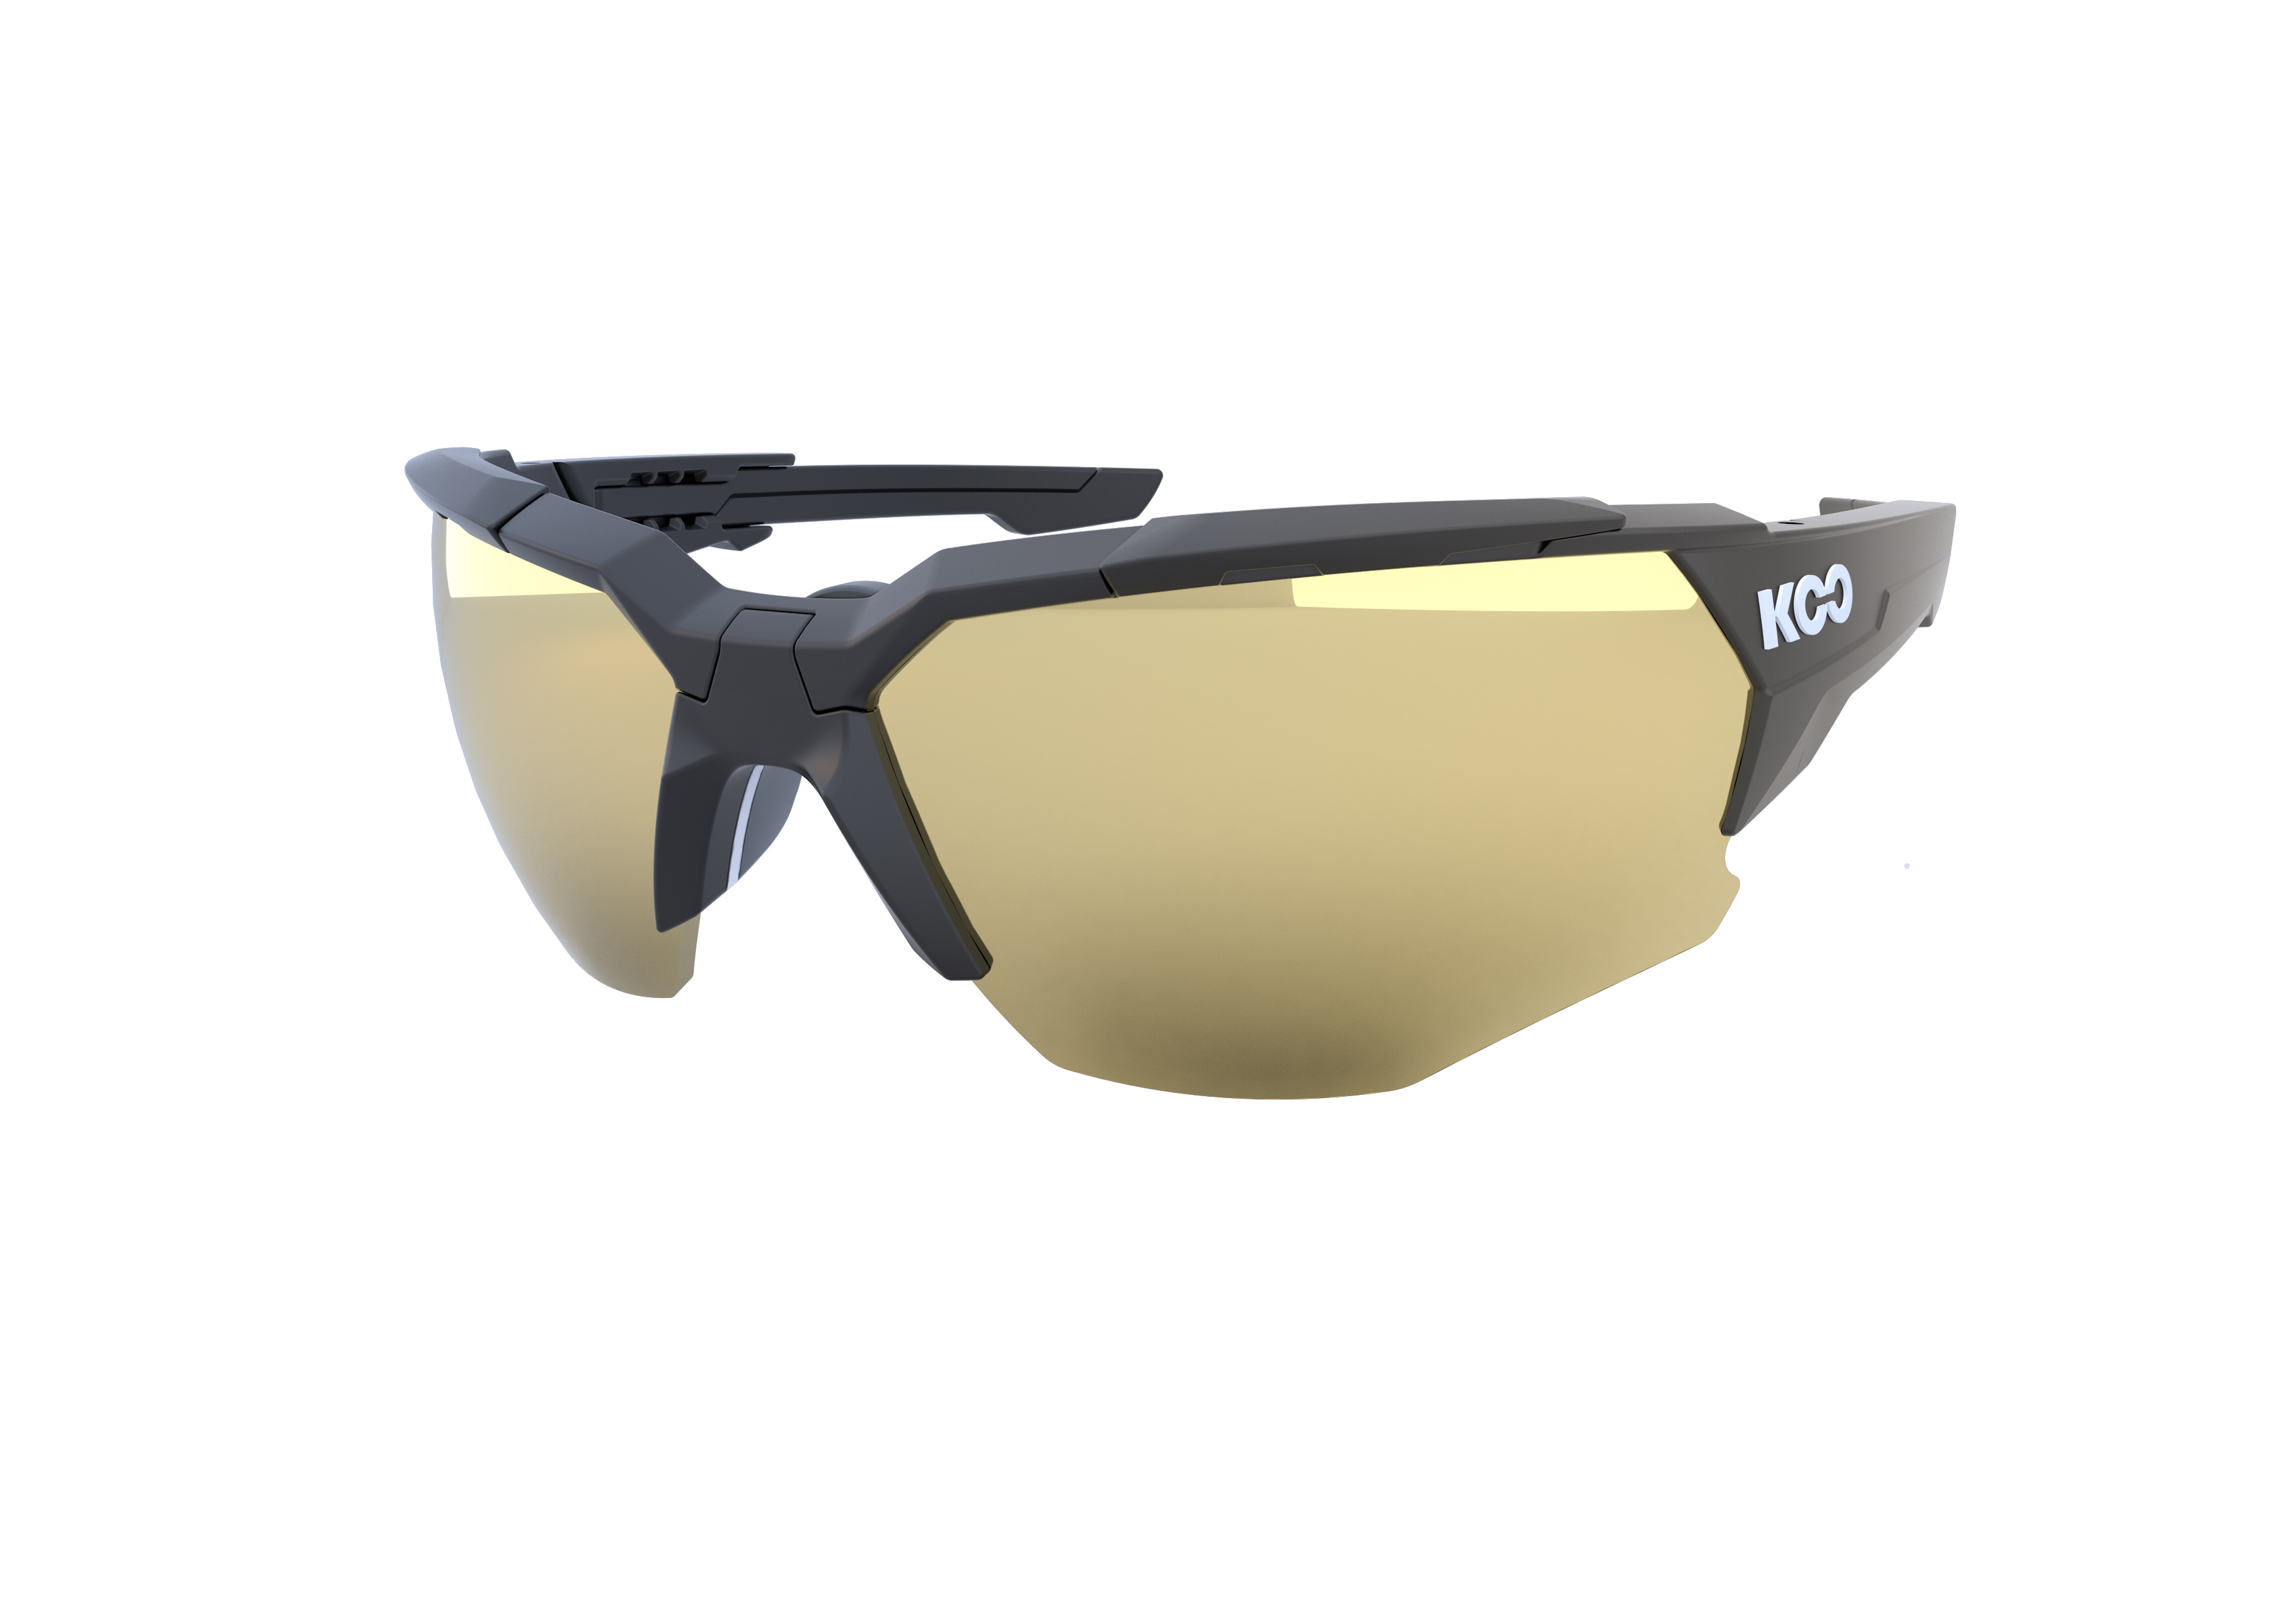 f7605550beb5 Koo ORION Cycling Sunglasses : Matte Black - Milky Gold - 700